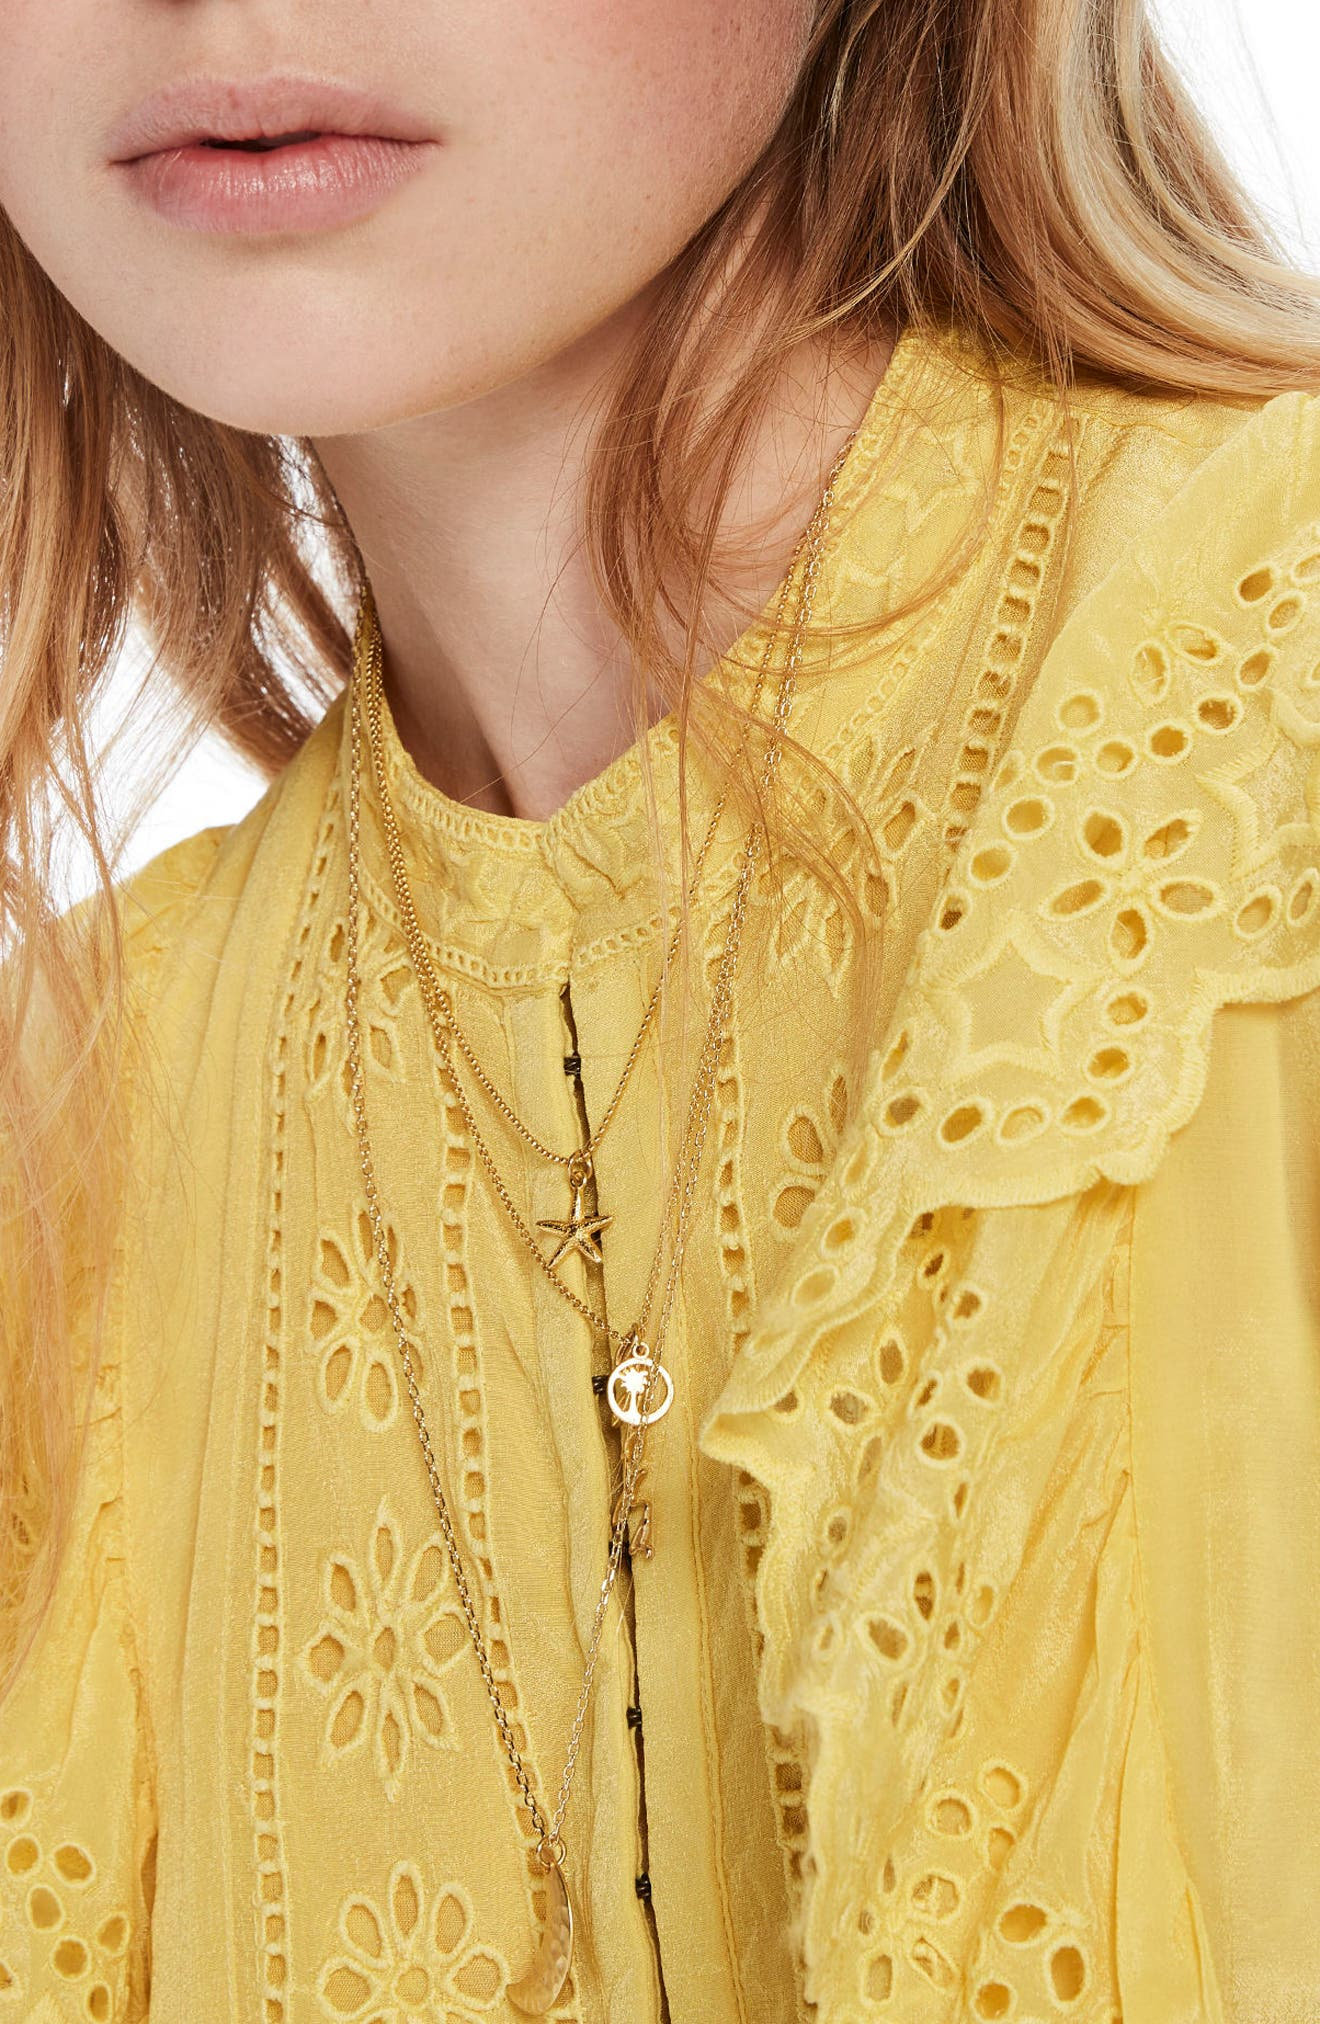 Ruffle Embroidered Eyelet Top,                             Alternate thumbnail 3, color,                             2118 Cheddar